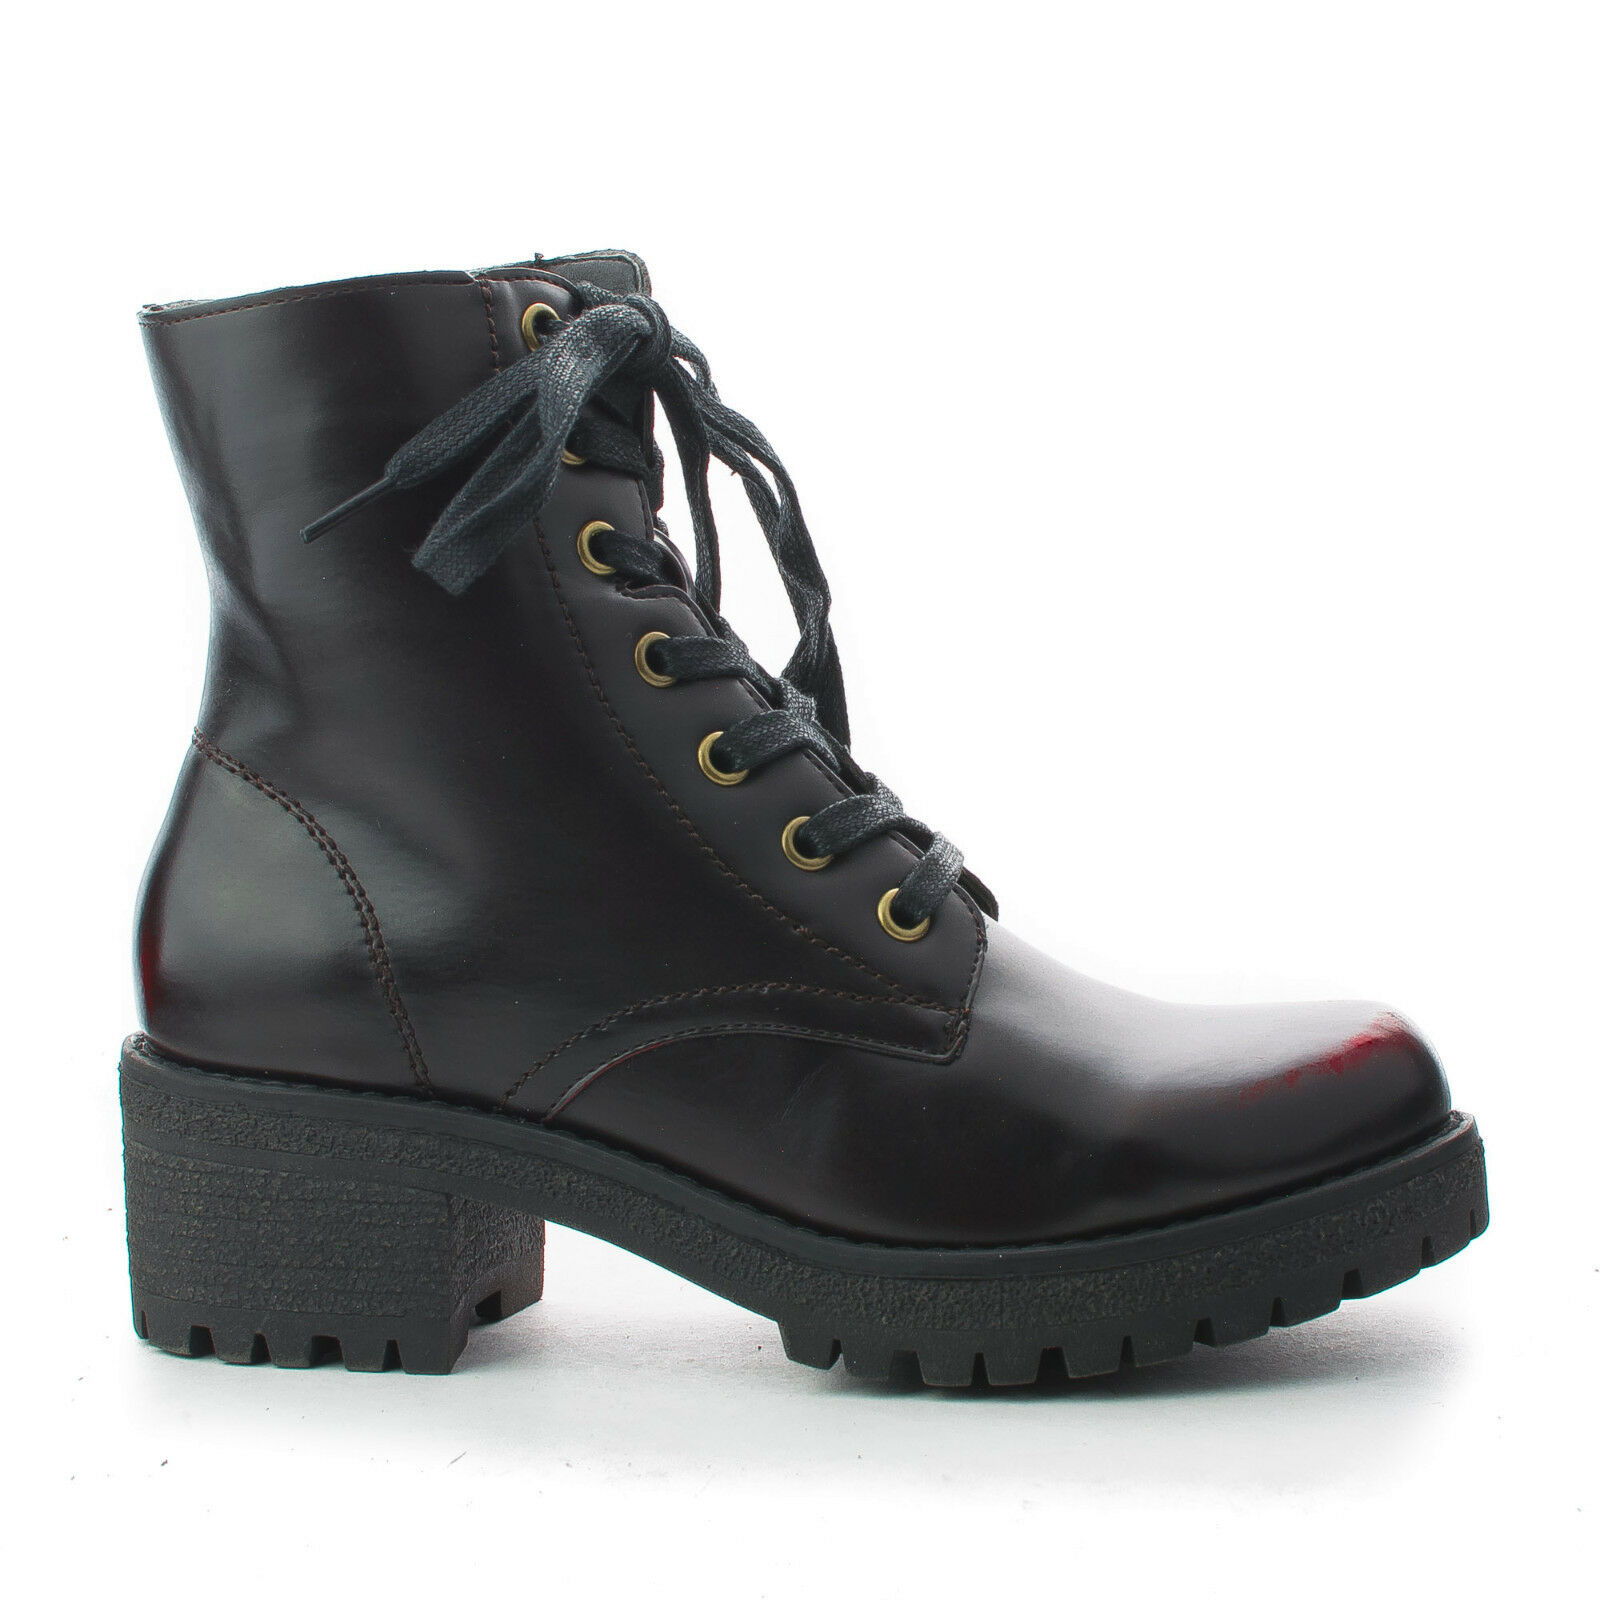 Round Toe Women's Lace Up Lug Sole Ankle Boots